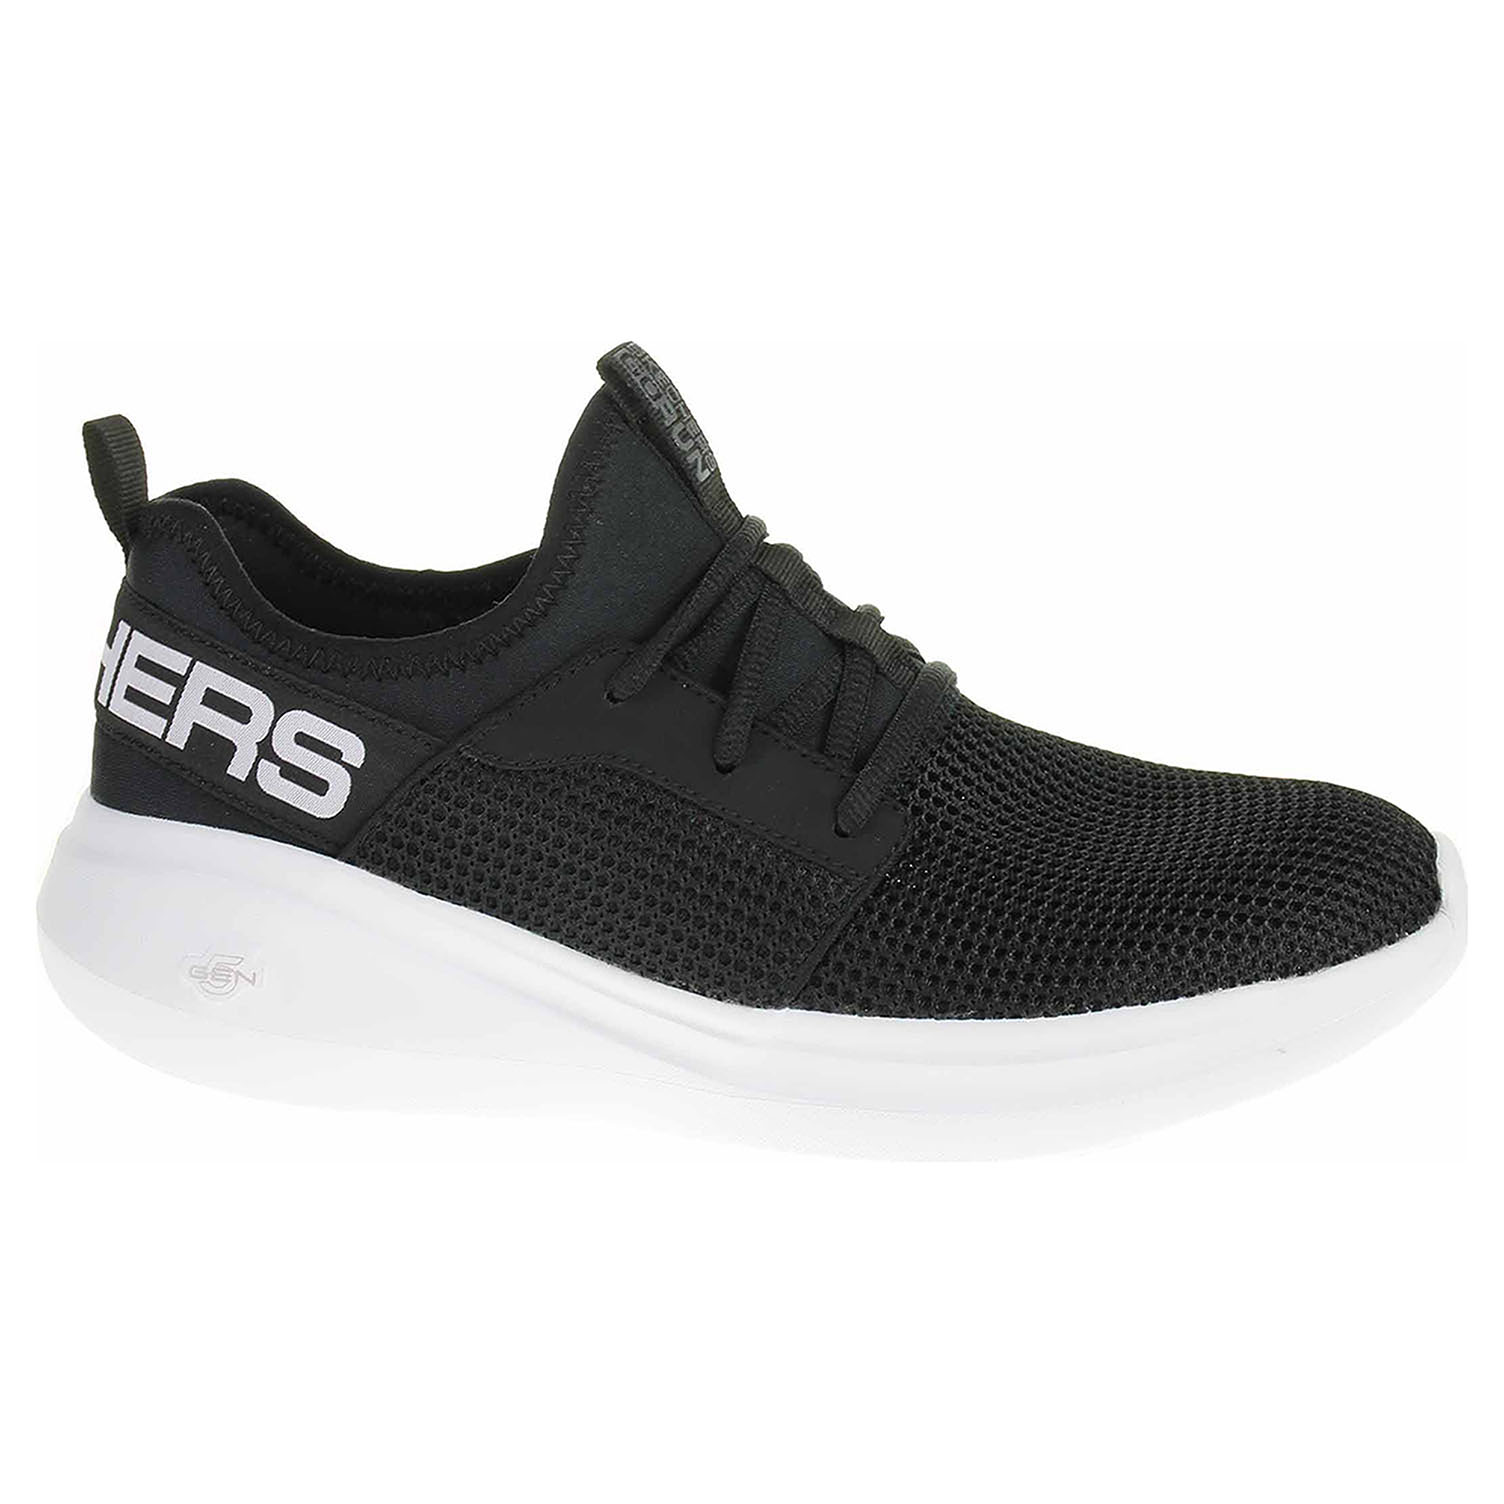 Skechers Go Run Fast - Valor black-white 15103 BKW 39